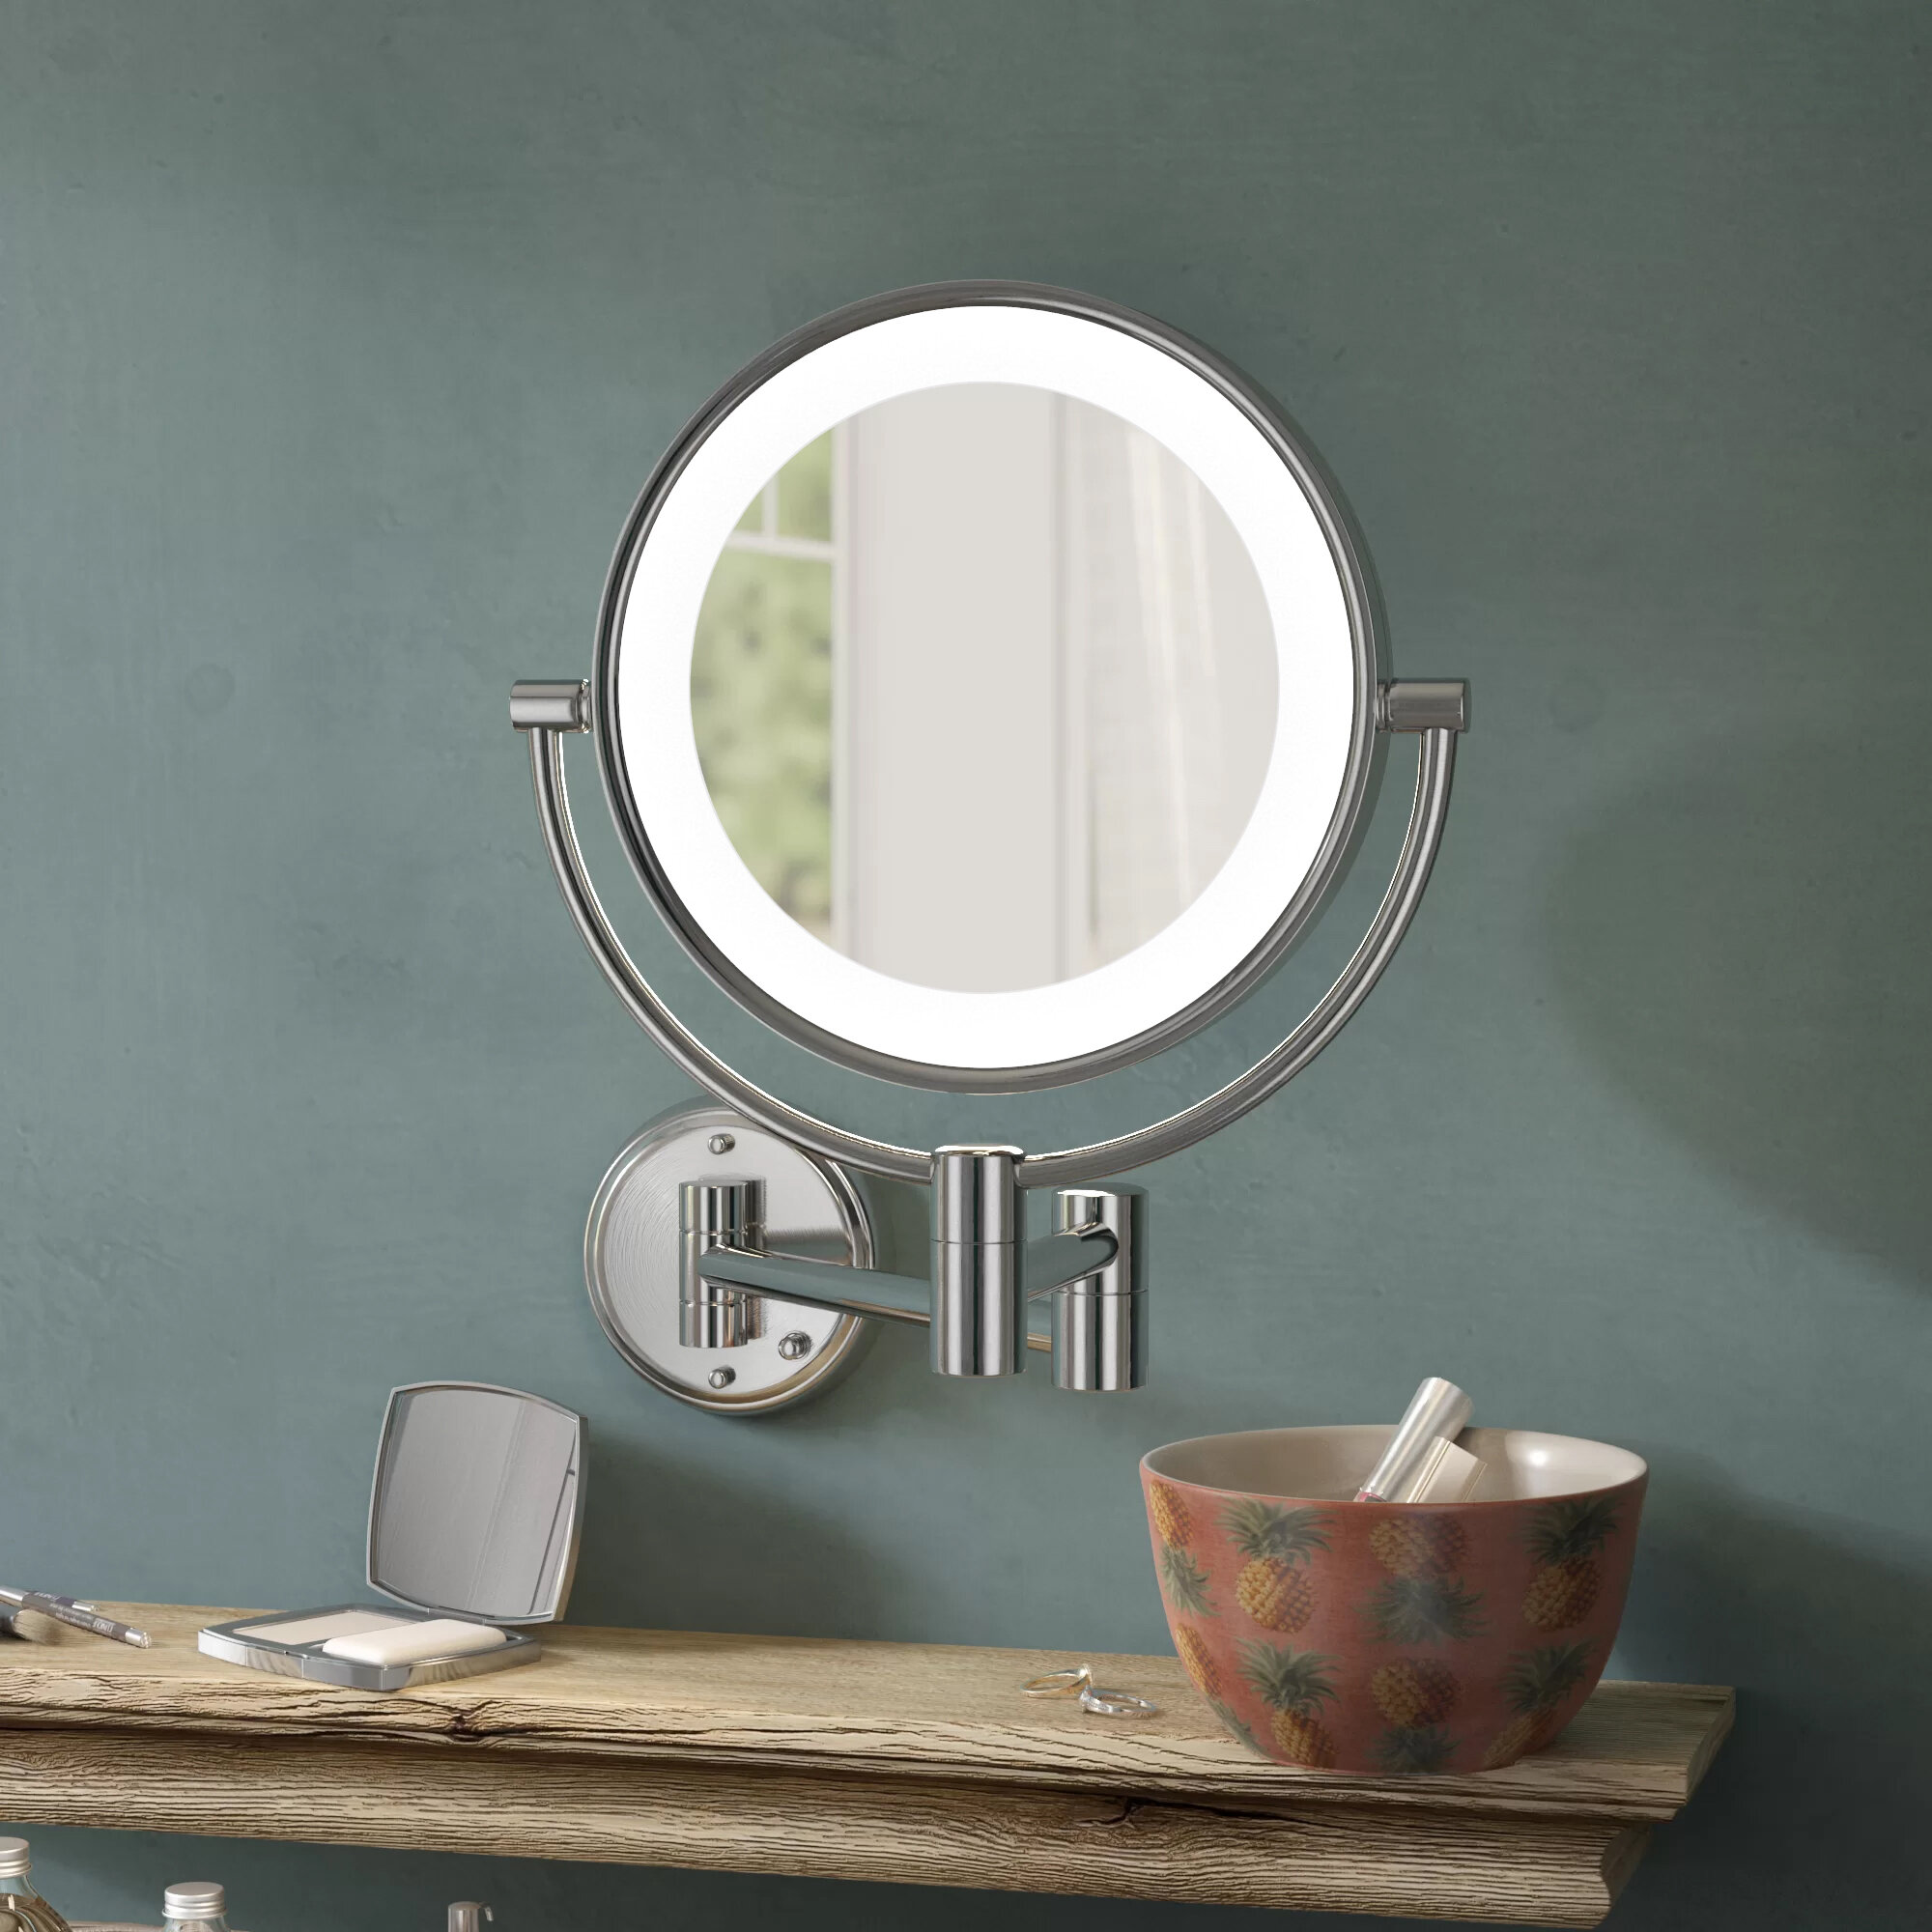 Darby Home Co Adonis Dual Sided American Traditional Lighted Makeup Mirror Reviews Wayfair